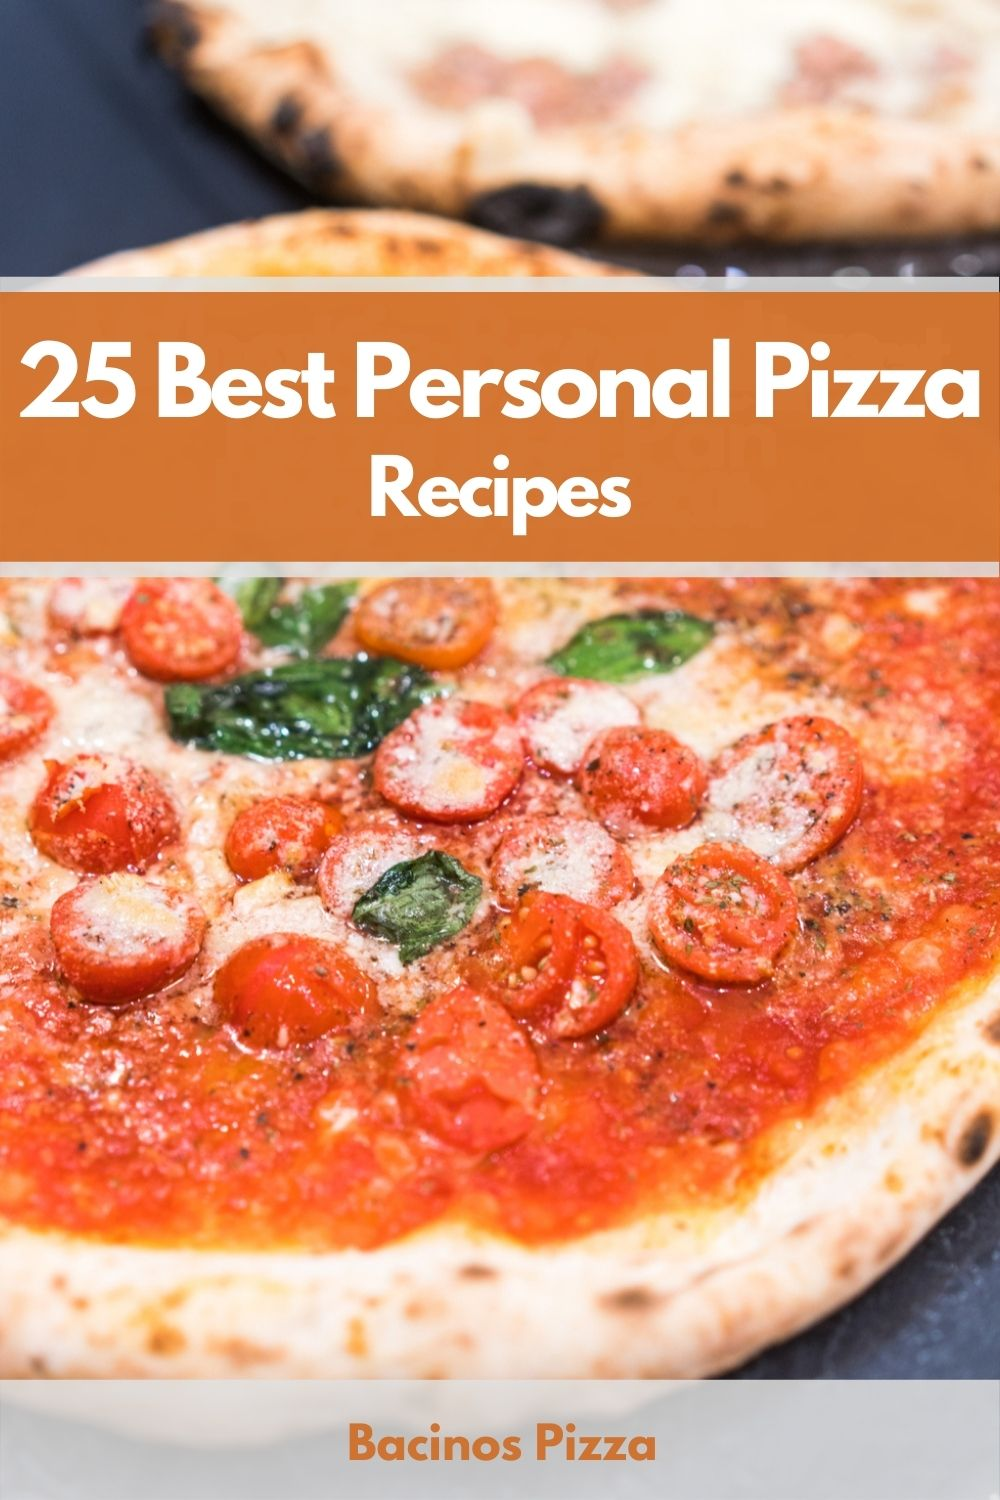 25 Best Personal Pizza Recipes pin